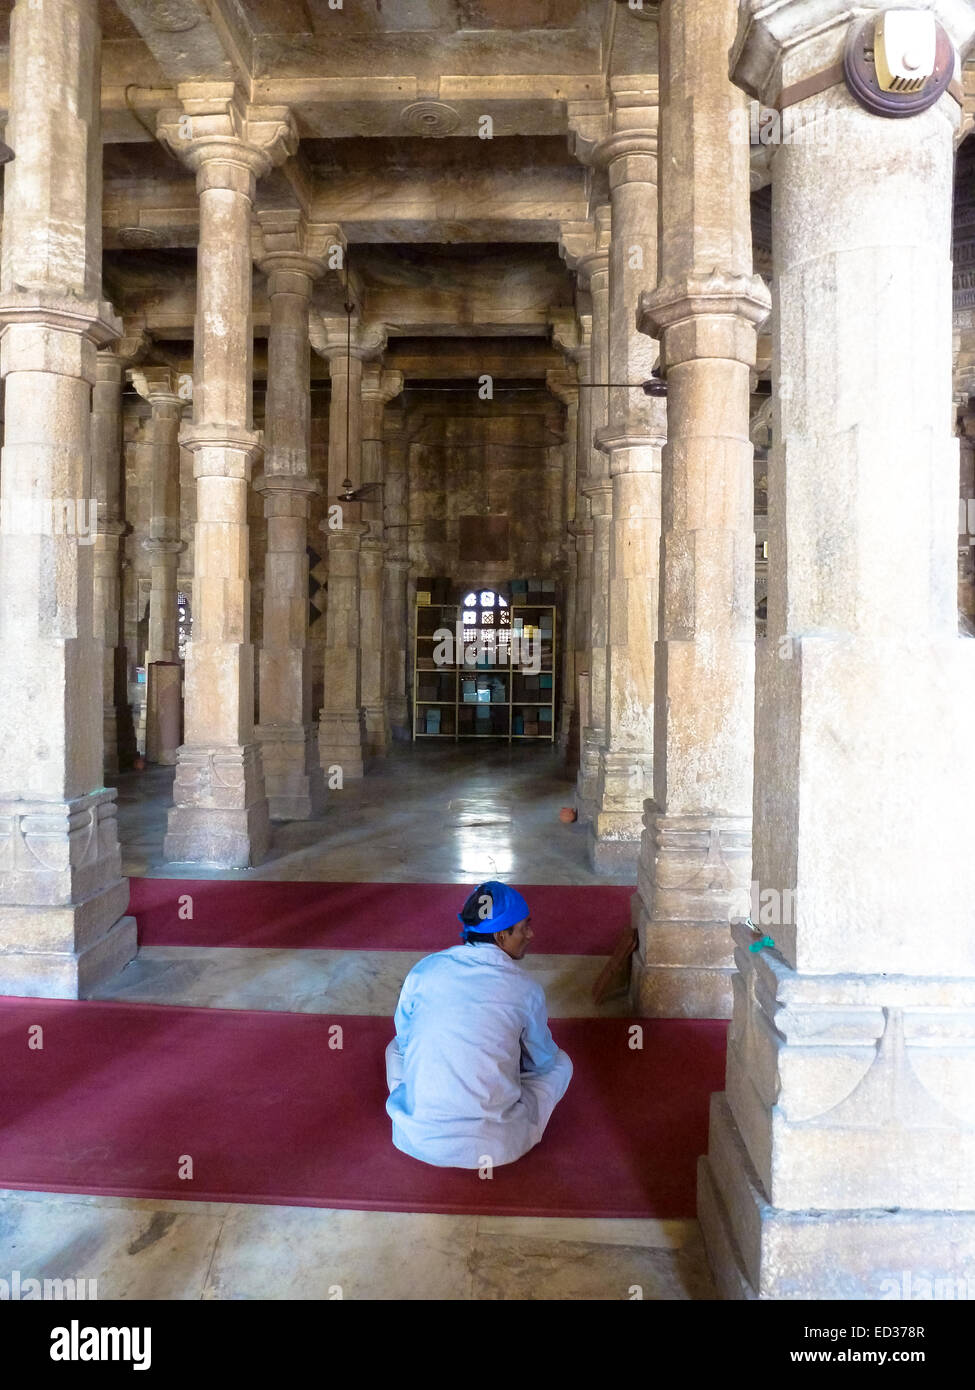 man in mosque at ahmedabad gujarat india - Stock Image